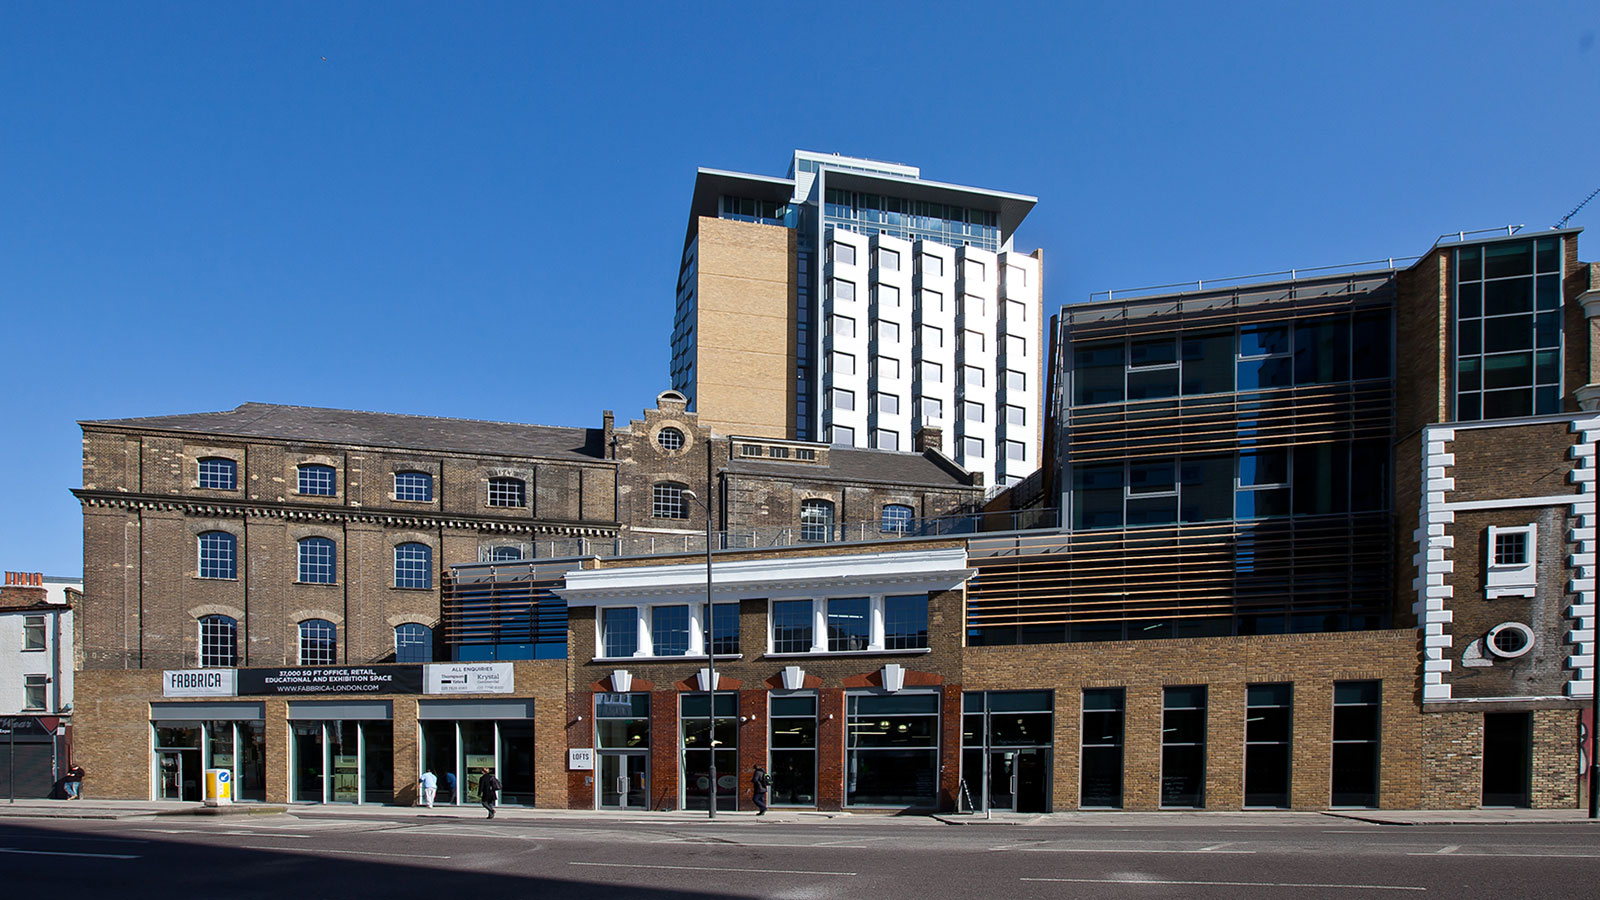 Assam Place Student Accommodation - Building Exterior - Mace Group